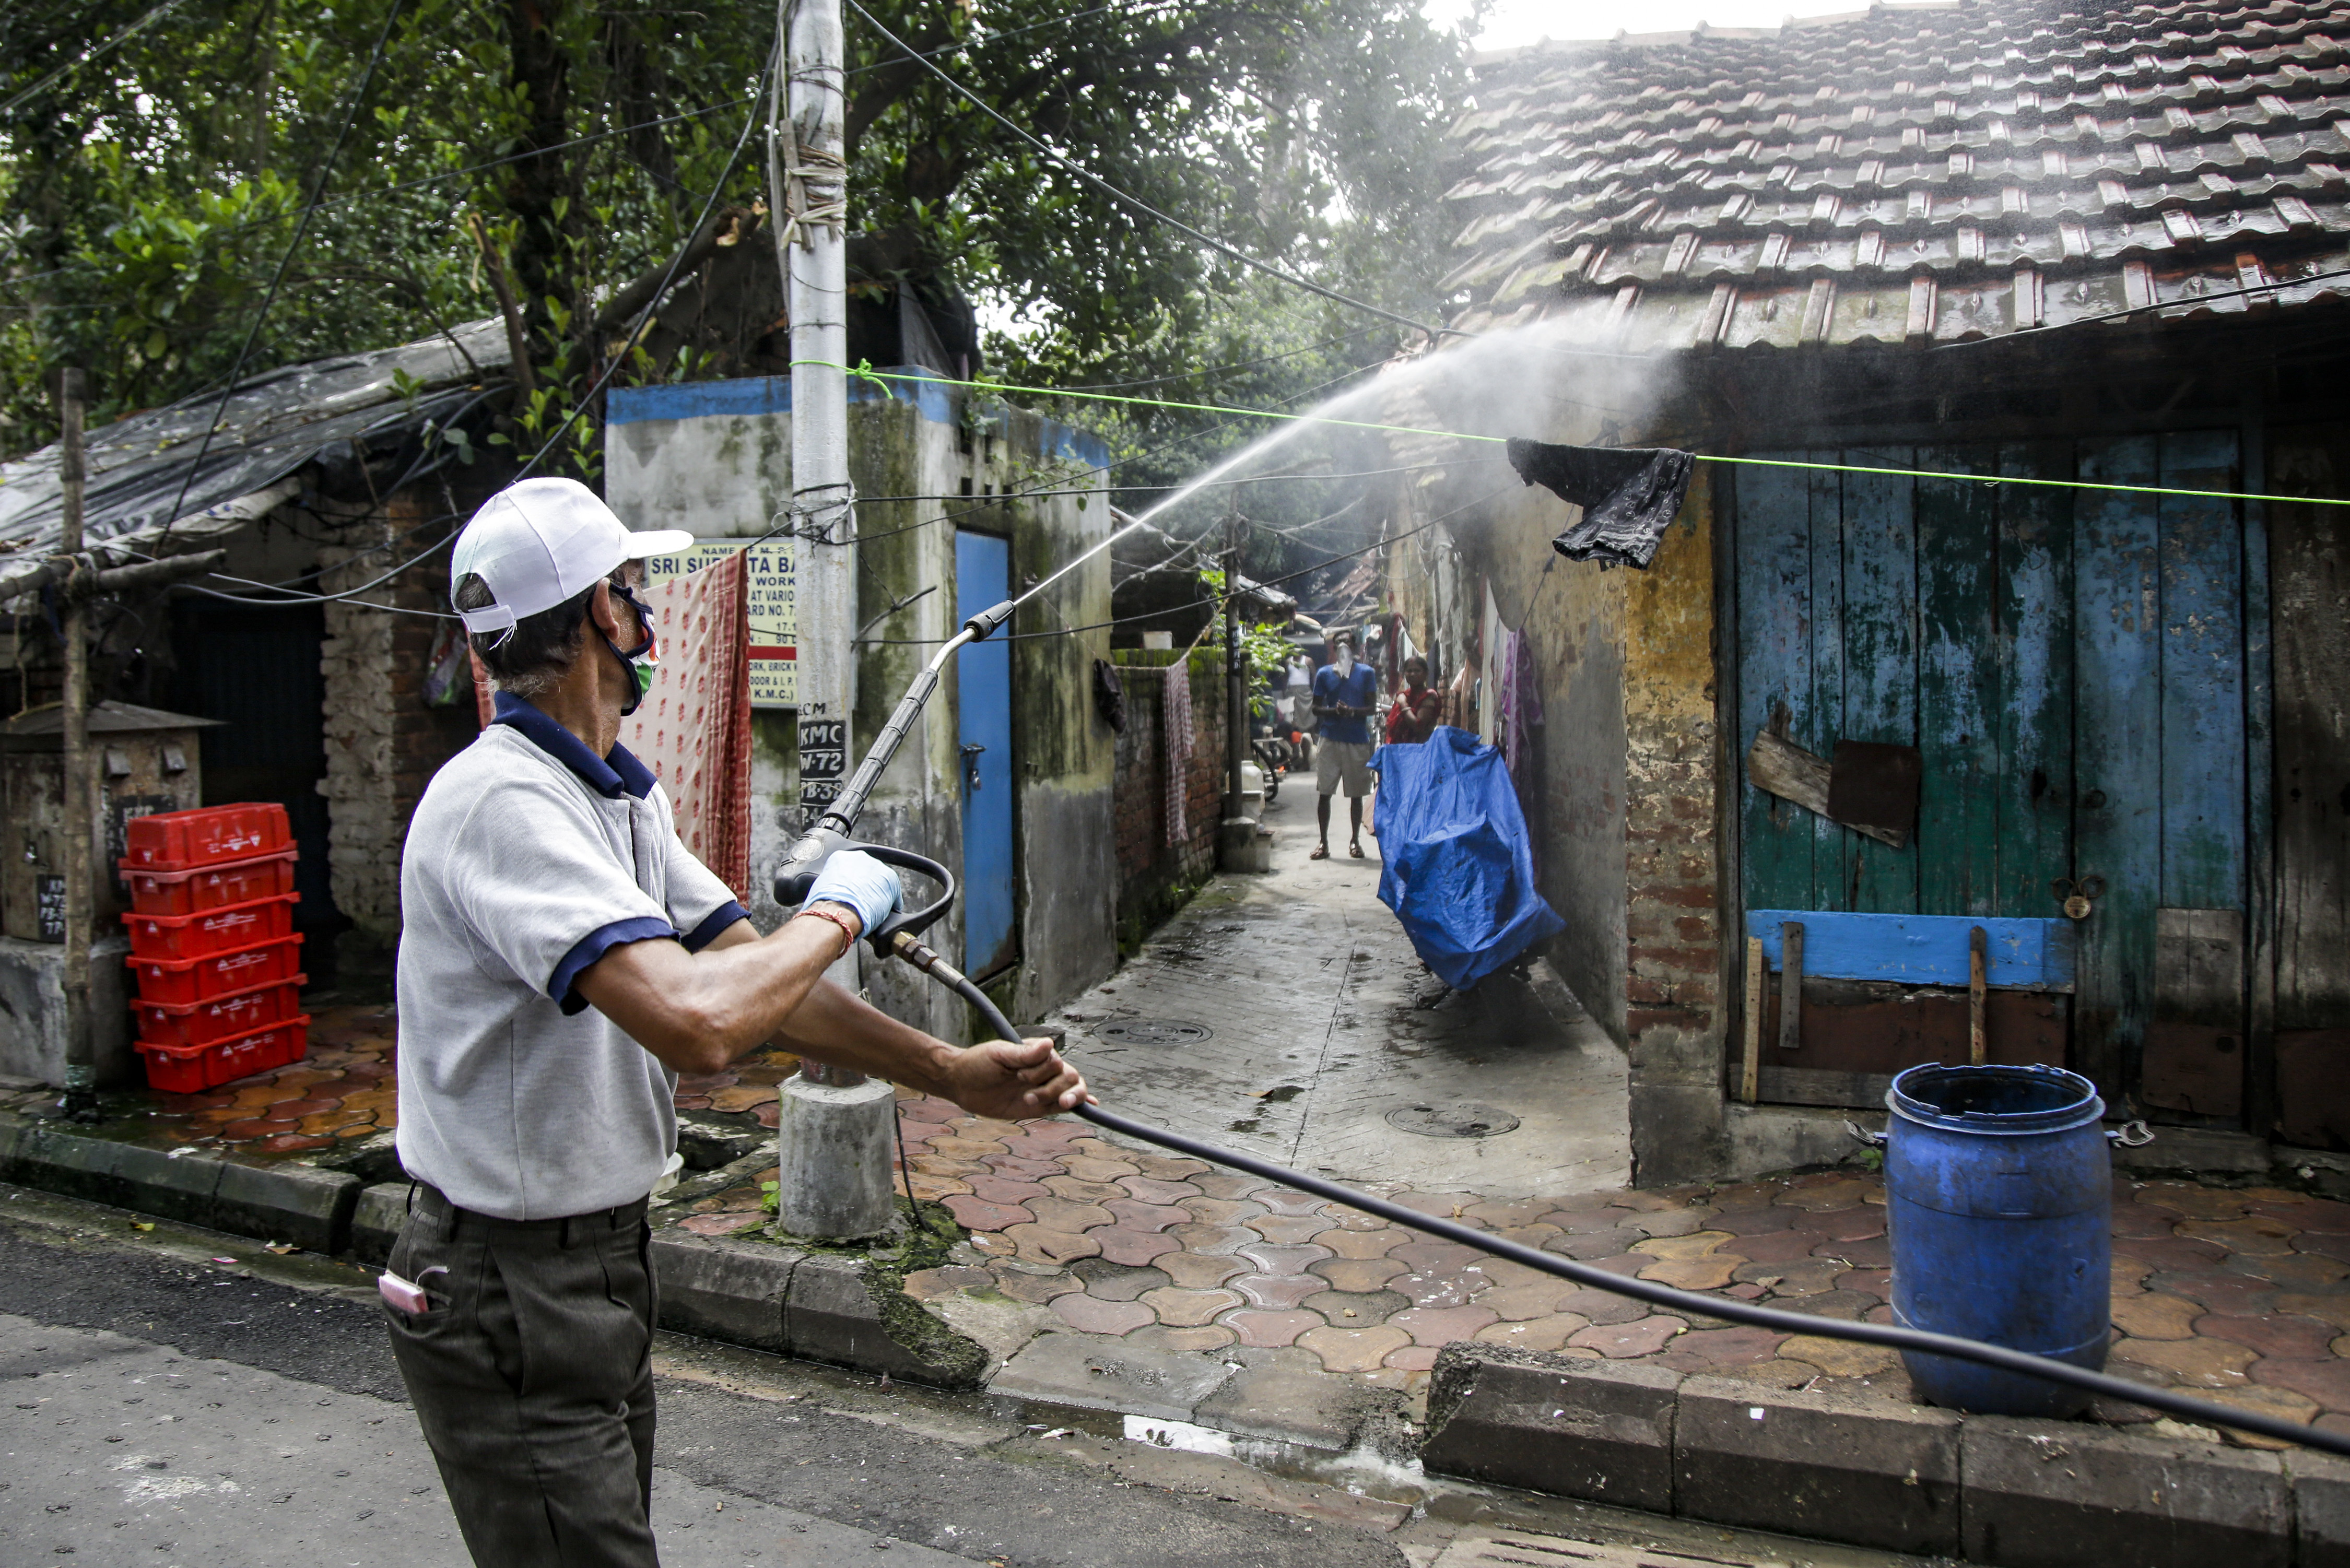 A civic worker disinfects an area inside a containment zone to prevent the spread of the coronavirus in Kolkata, India, Tuesday, July 14, 2020. Several Indian states imposed weekend curfews and locked down high-risk areas as the number of coronavirus cases surged past 900,000 on Tuesday.